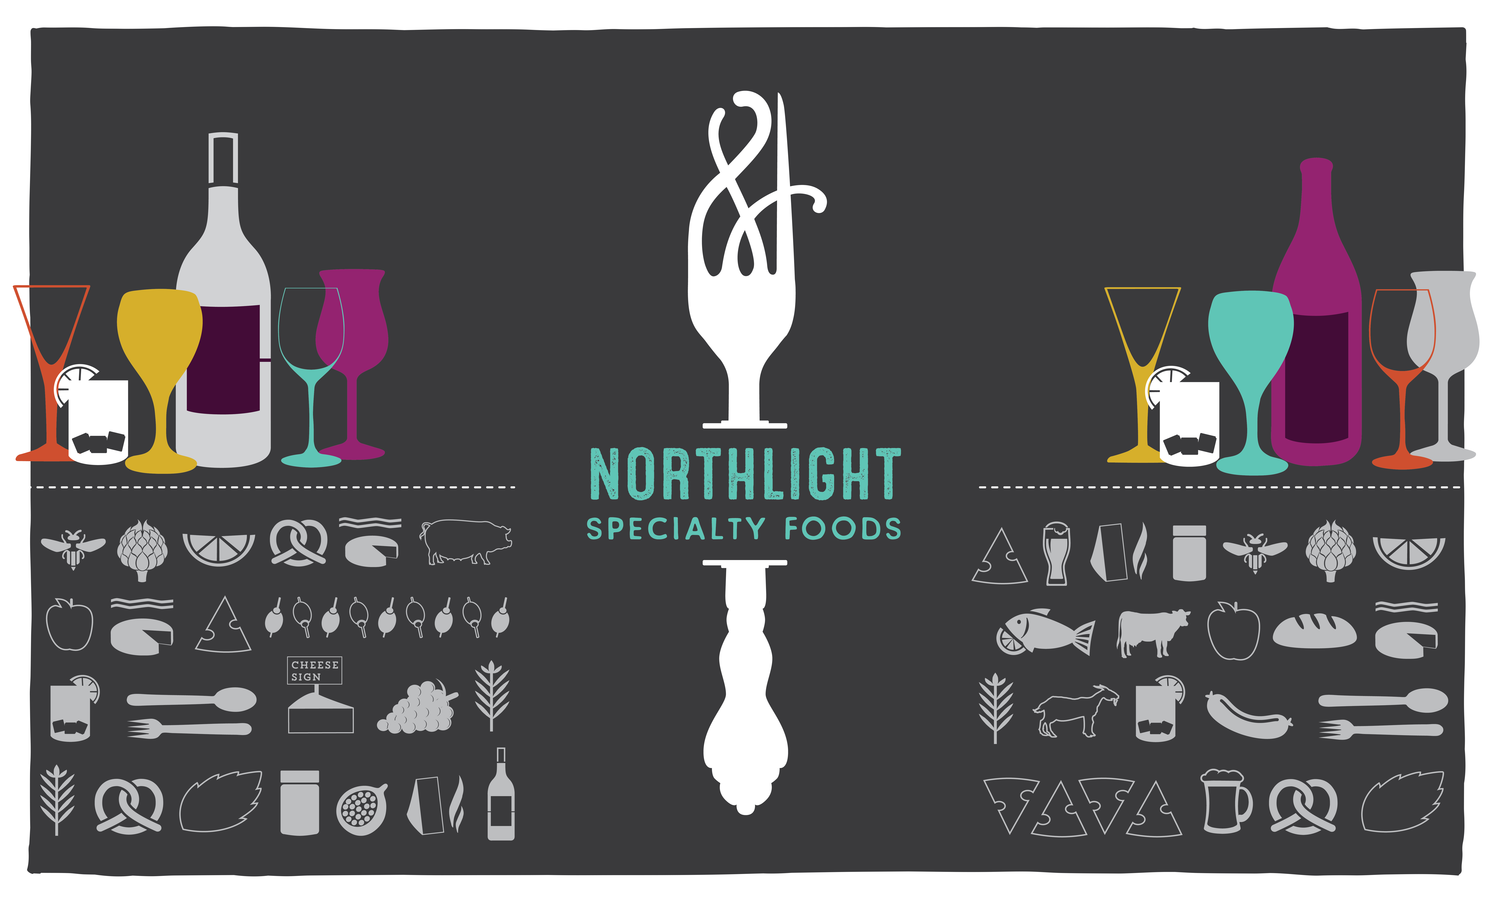 North Light Specialty Foods